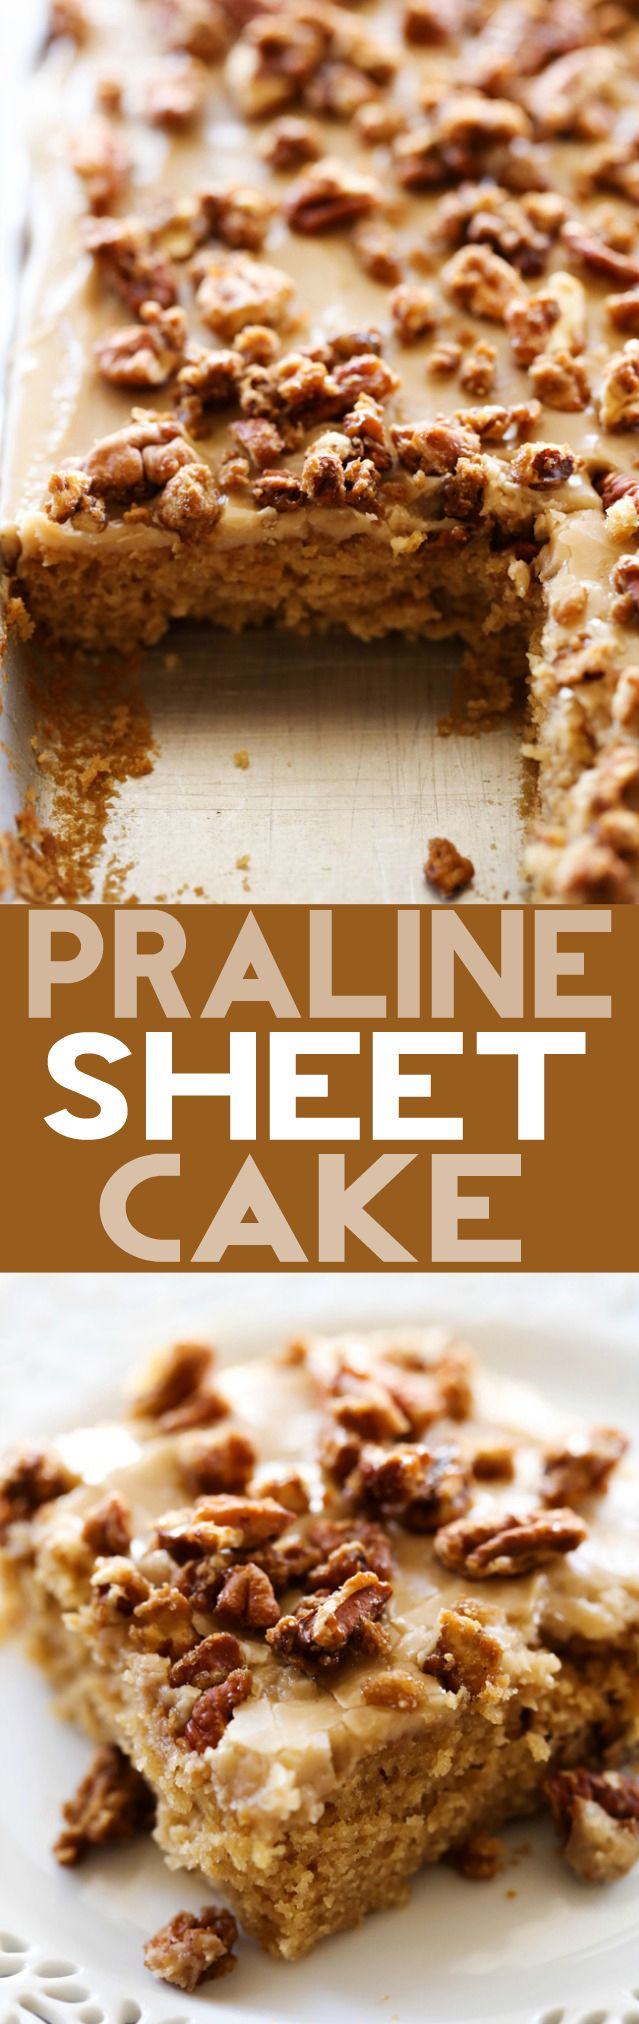 Caramel Praline Sheet Cake... A moist and delicious brown sugar sheet cake with an amazing caramel frosting. The sheet cake is topped wight he most delicious sweet and crunchy pralines for a perfect bite each and every time!